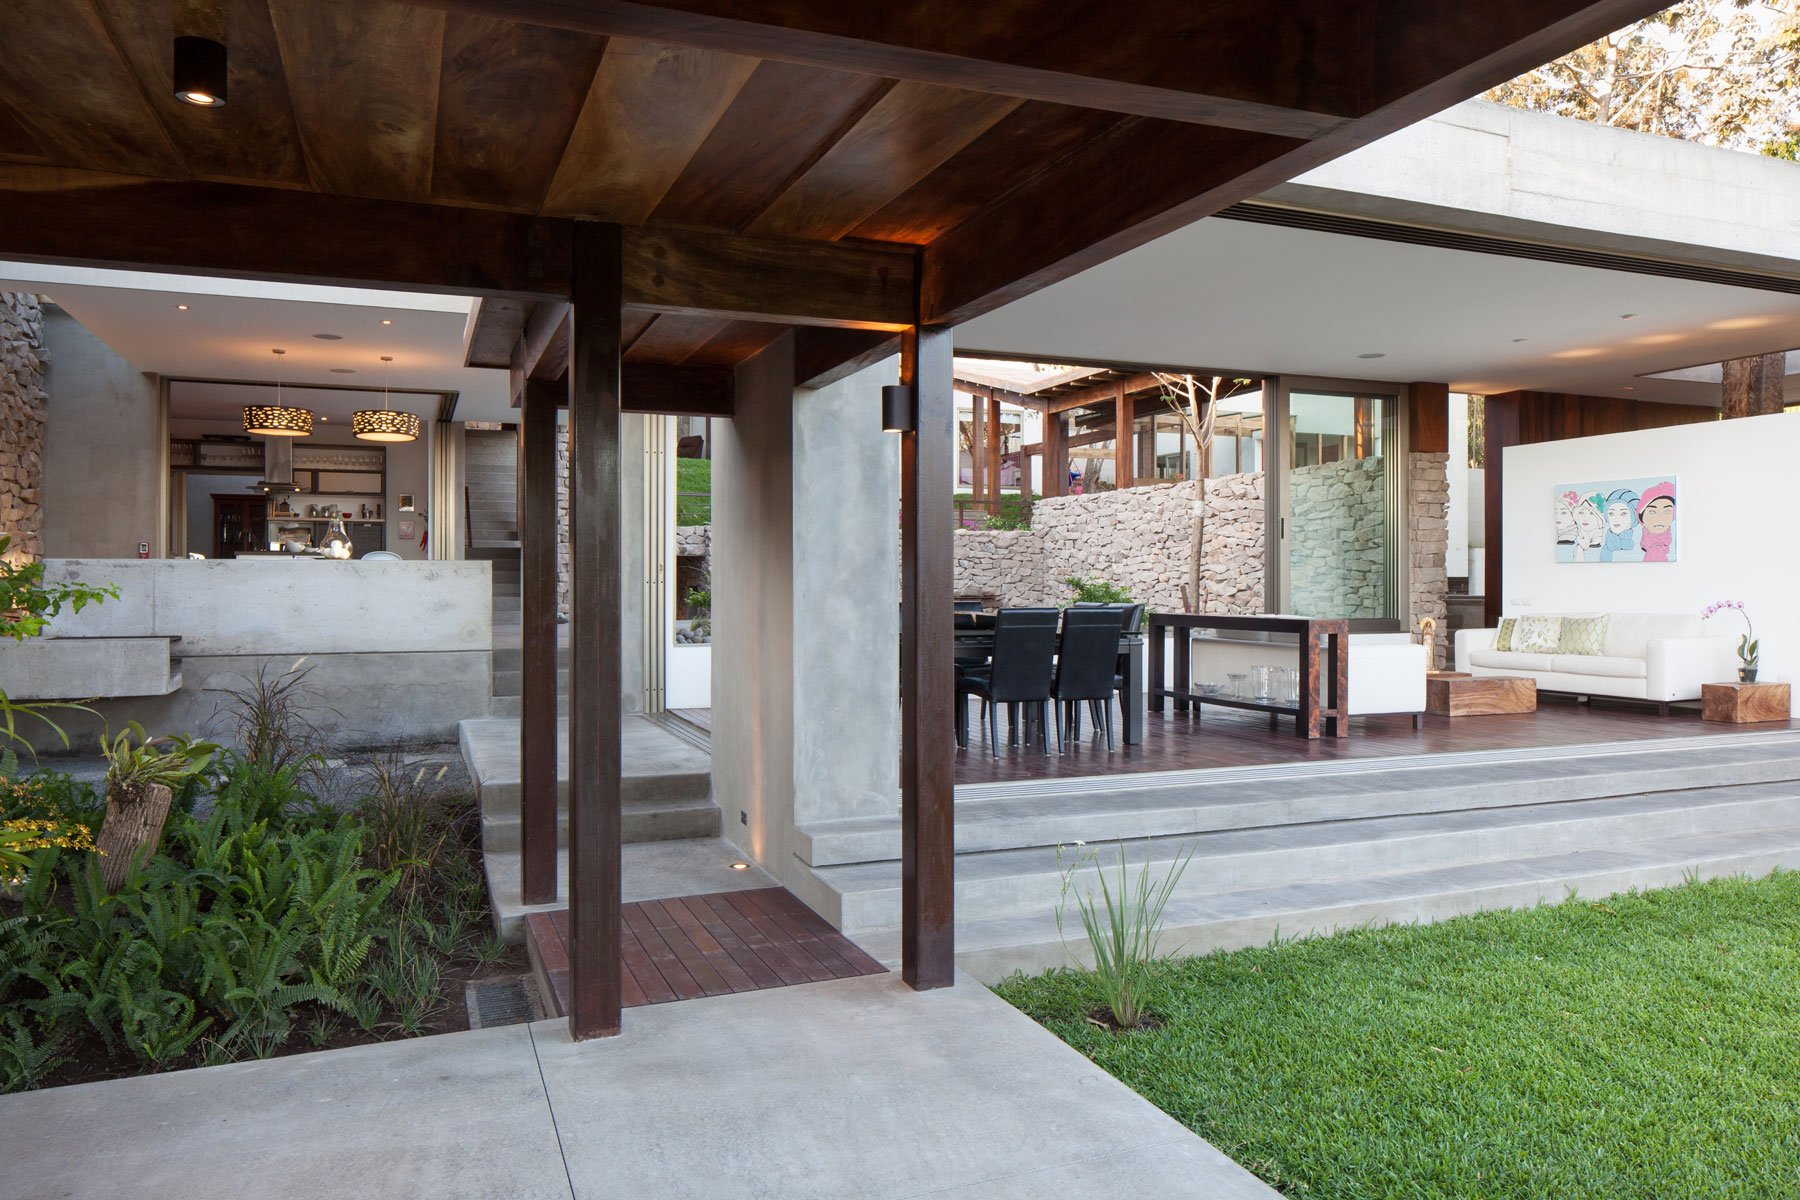 Modern rustic sensation of garden house in el salvador by for Garden design for home